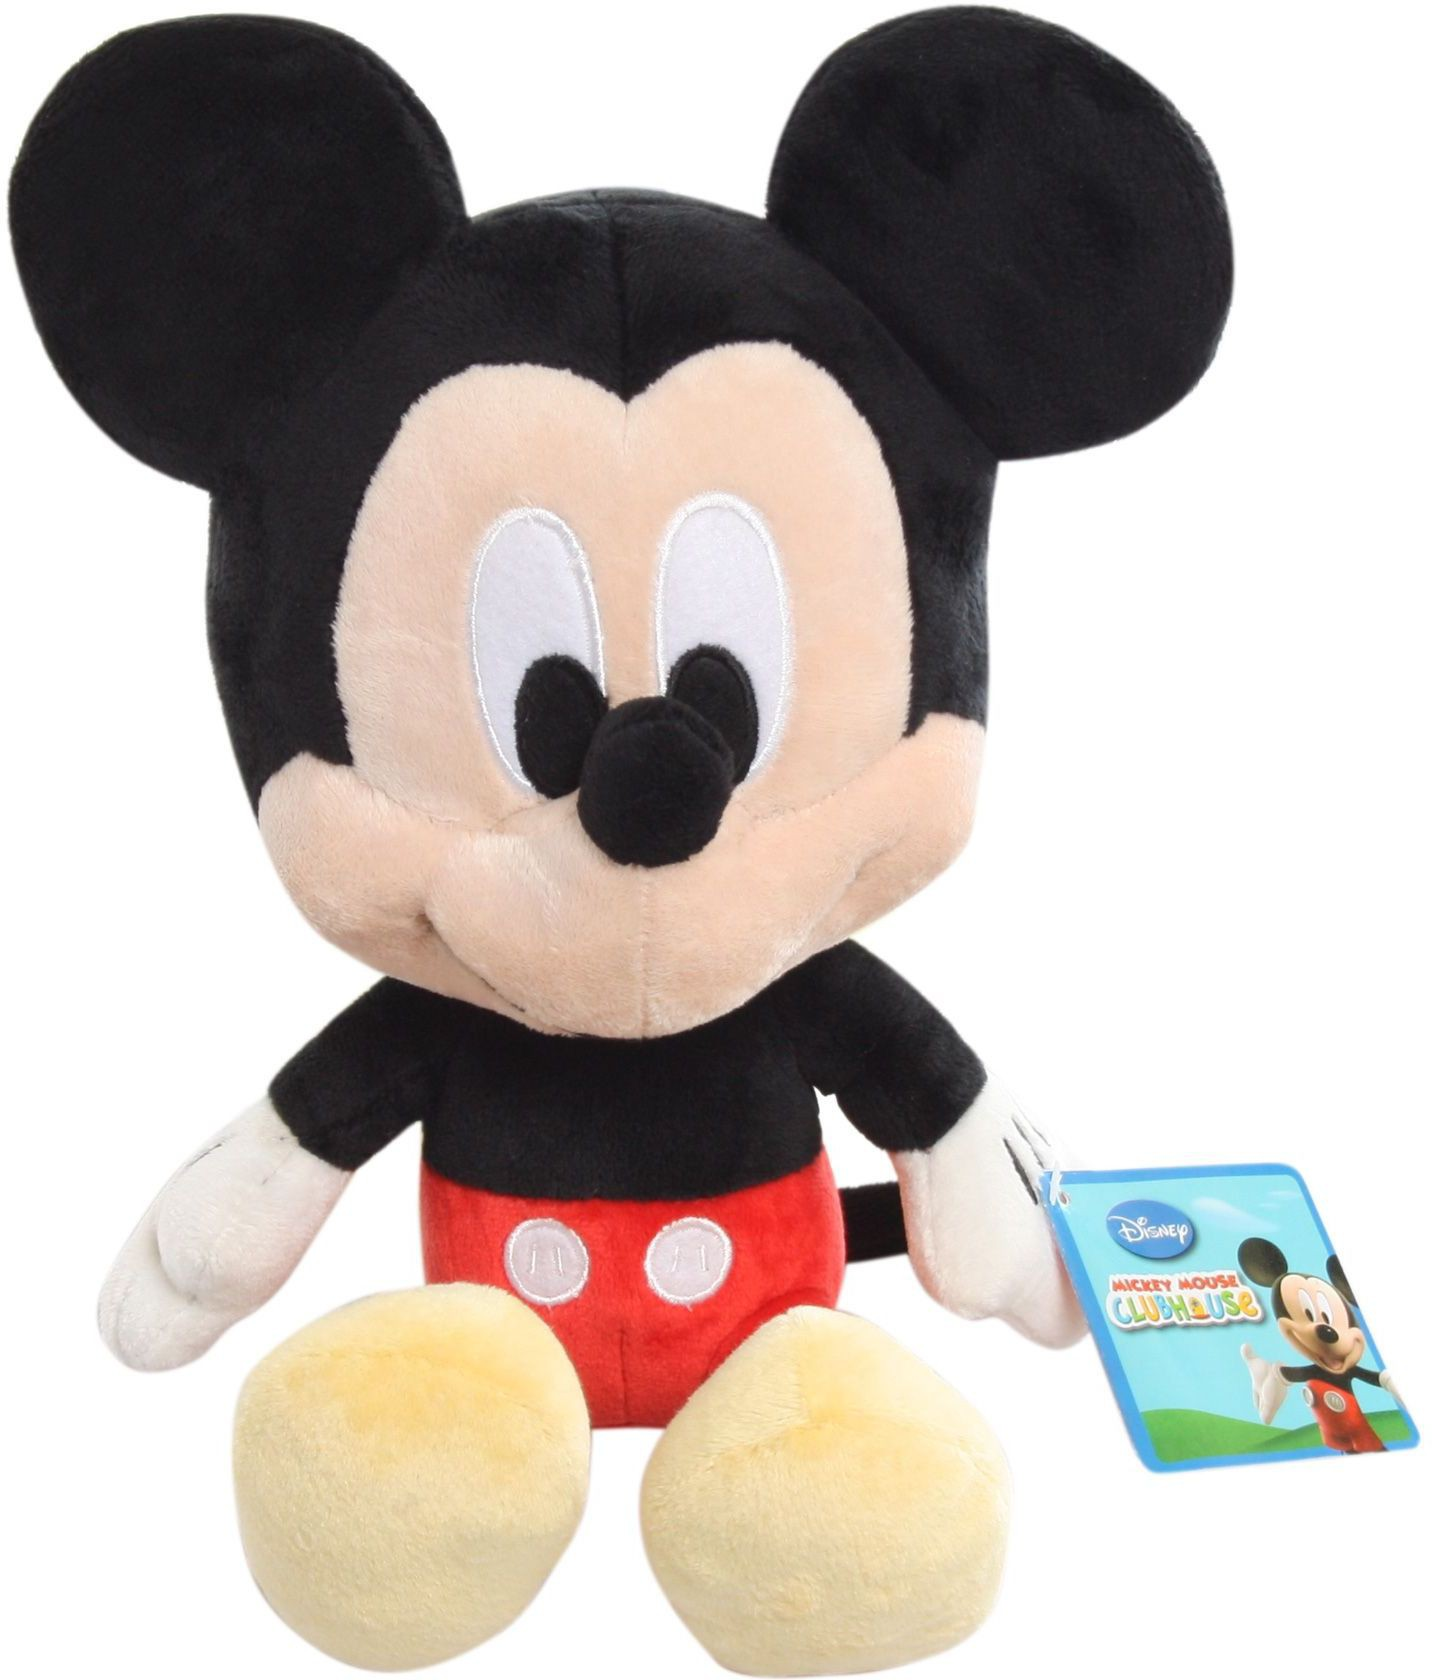 Deals - Delhi - Holiday Special <br> Soft Toys<br> Category - toys_school_supplies<br> Business - Flipkart.com